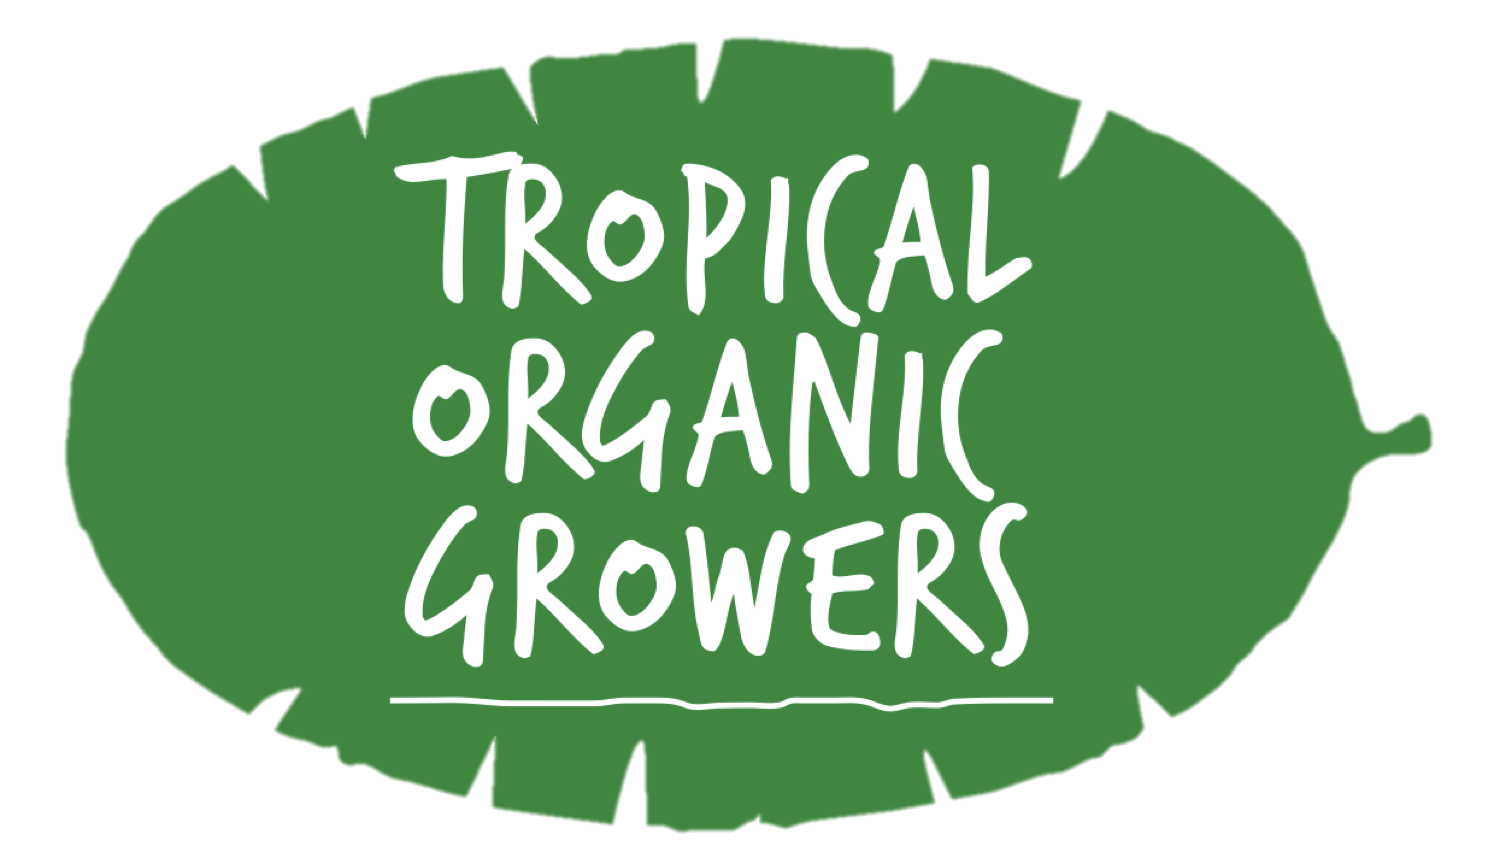 Tropical Organic Growers